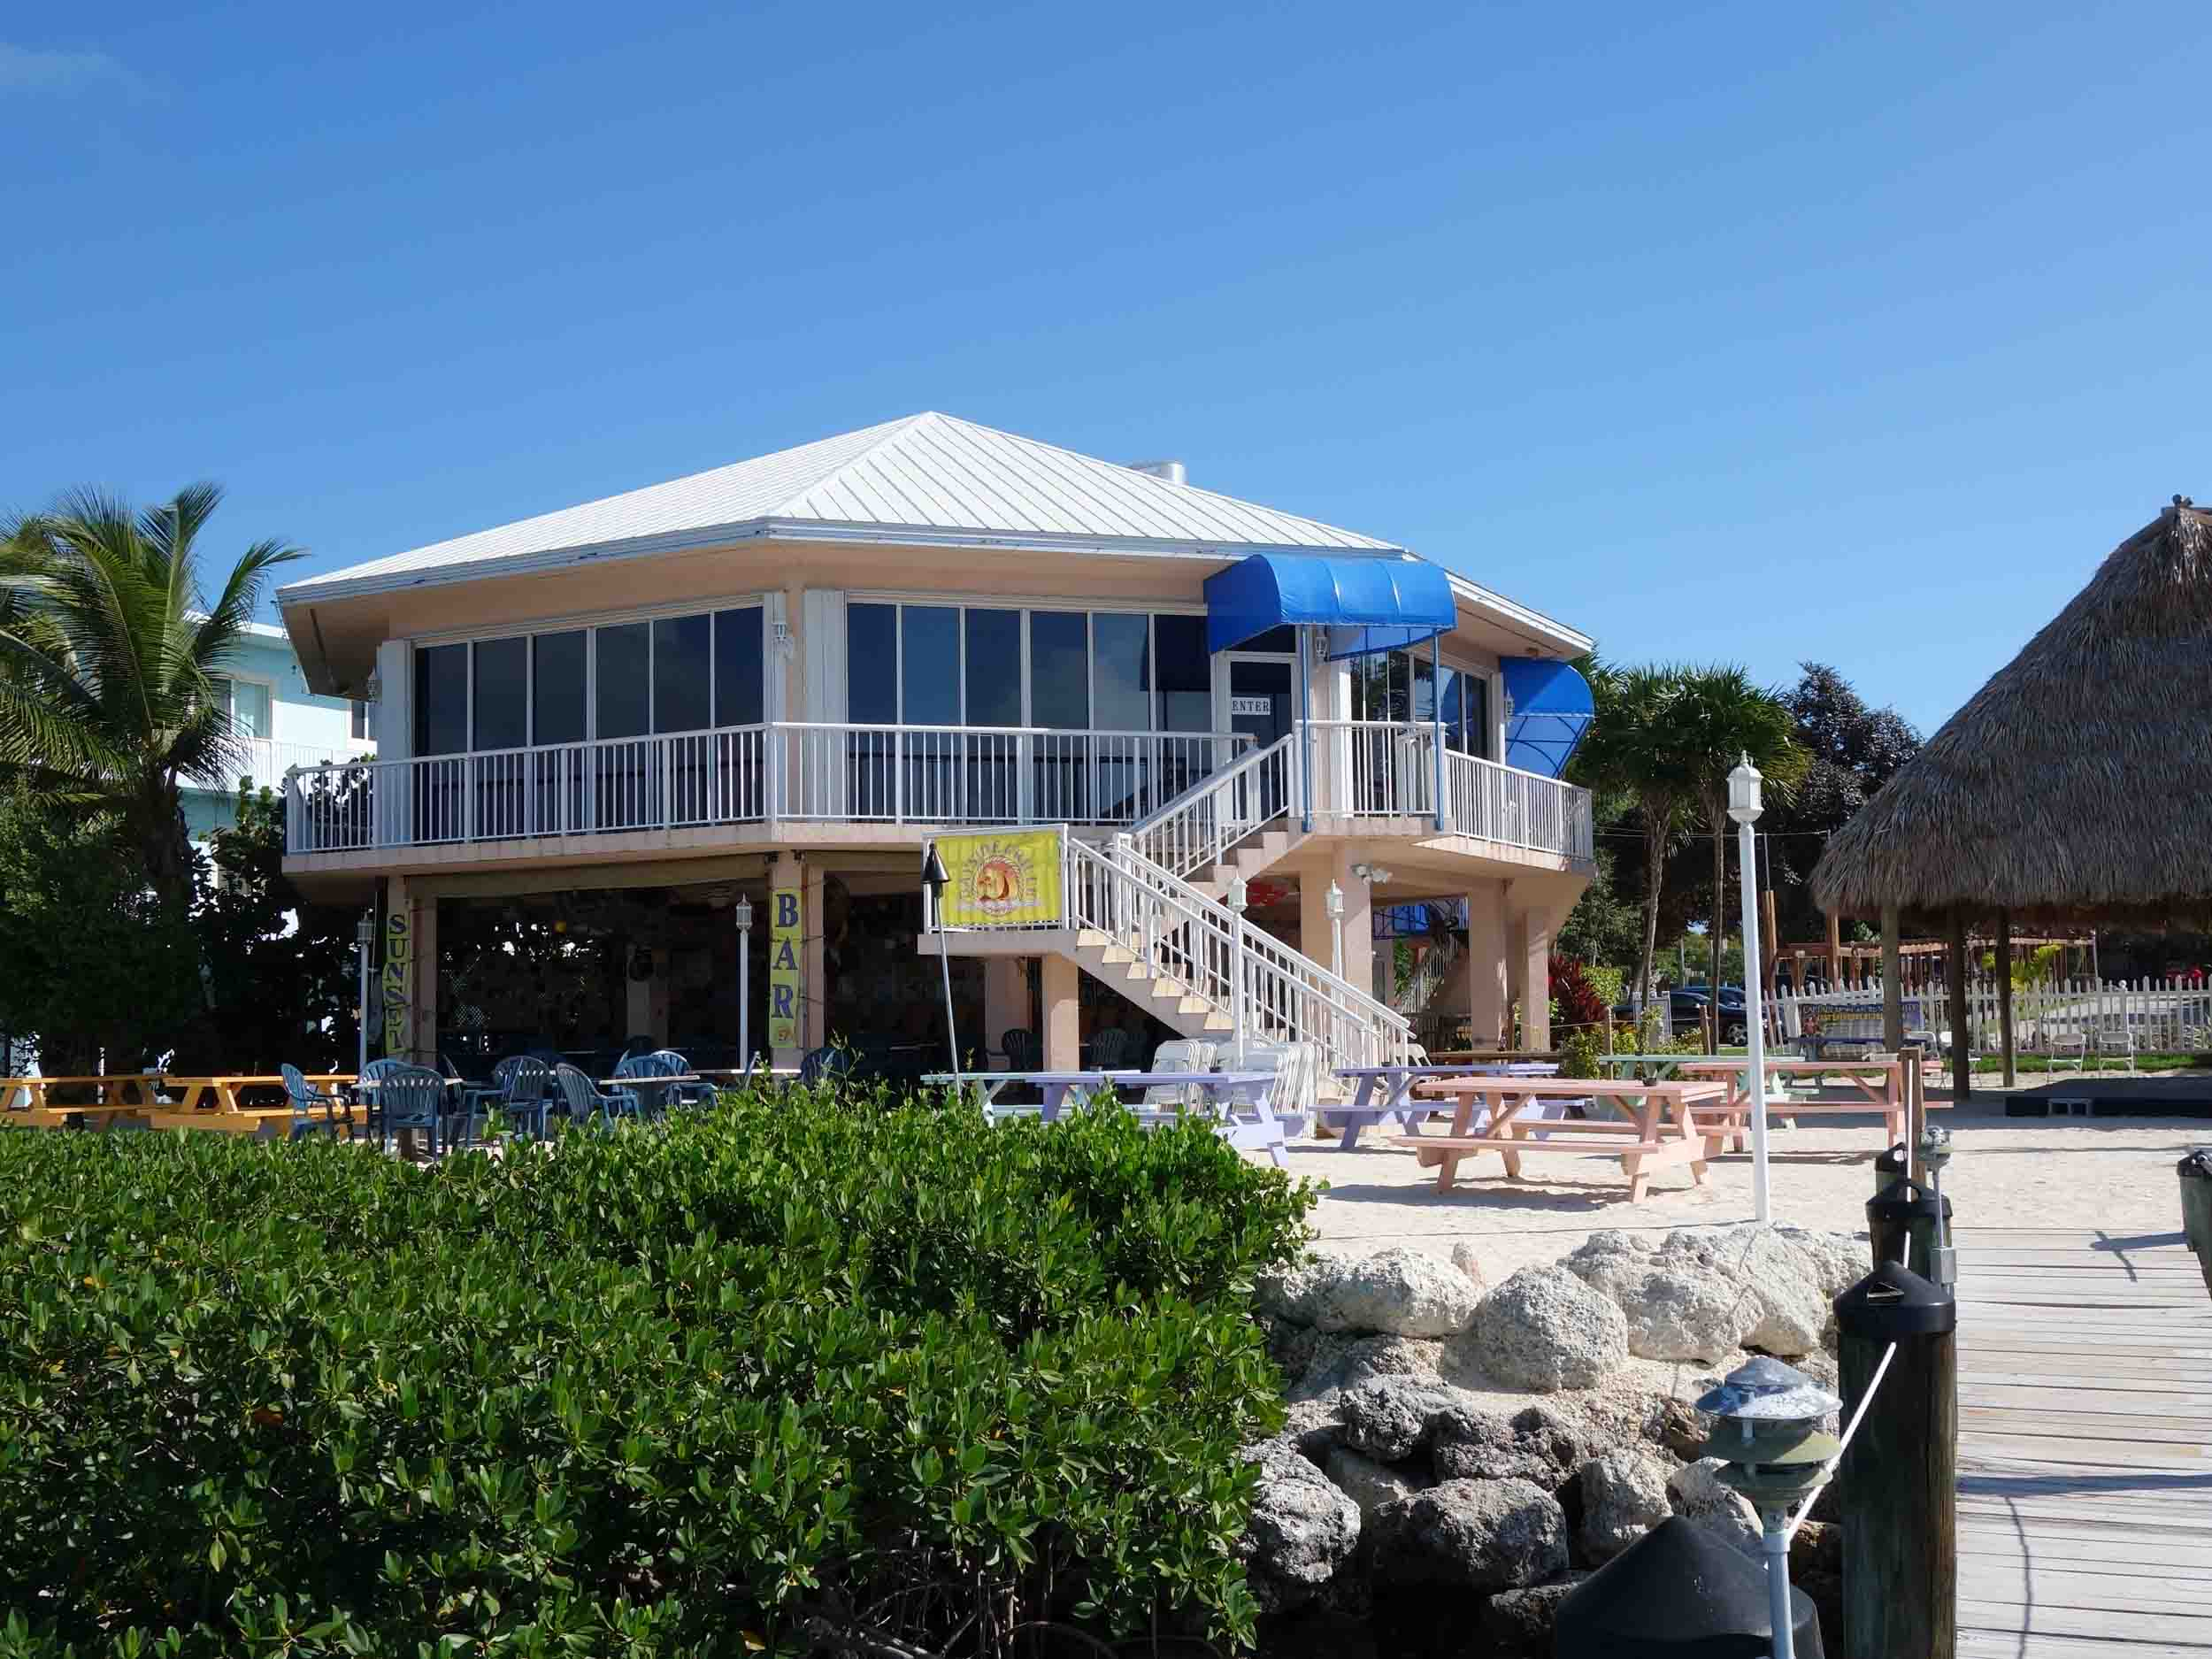 Bayside Grille Exterior